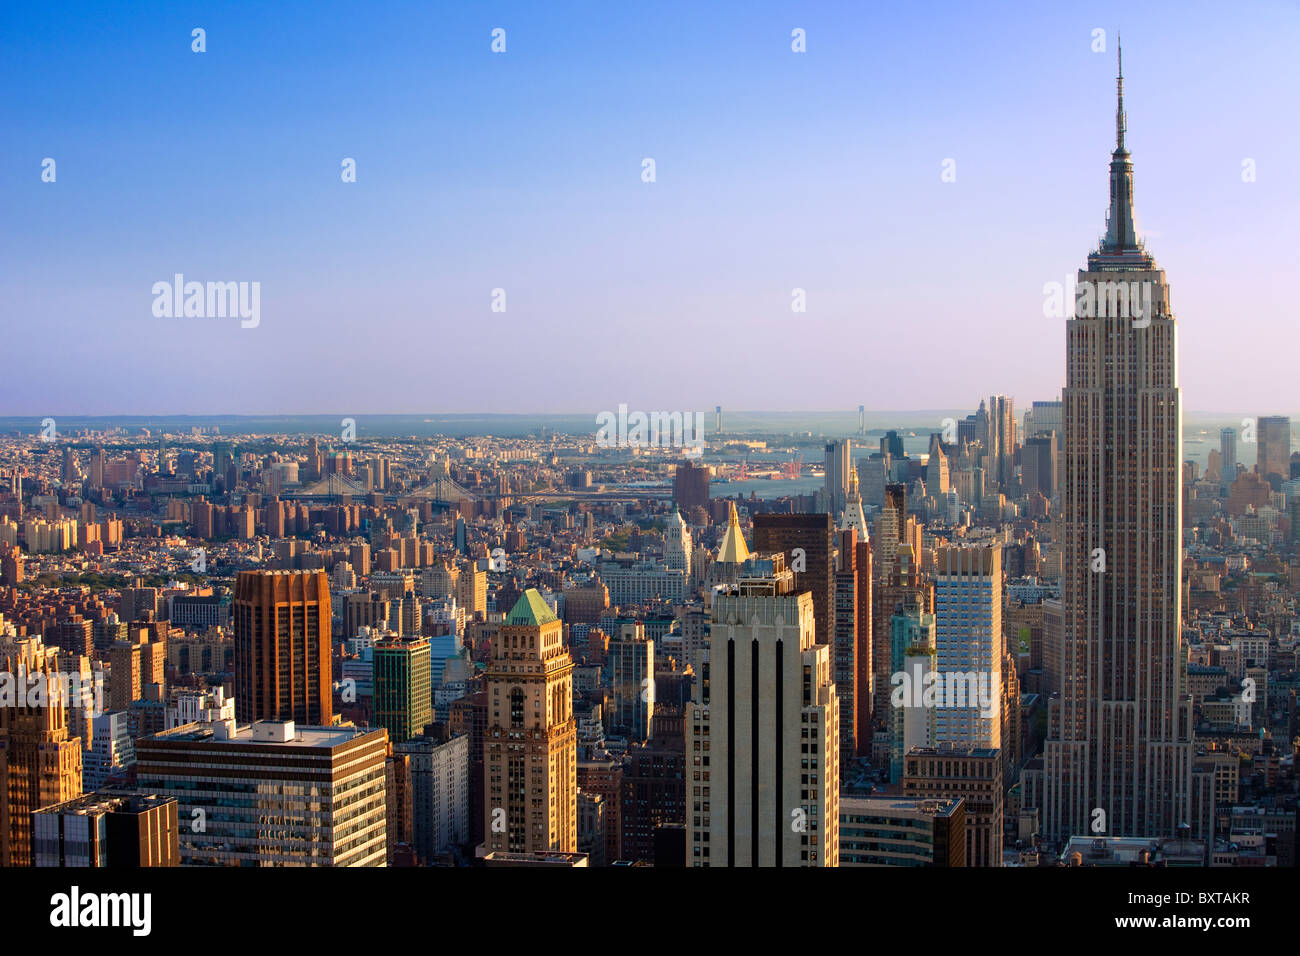 Late afternoon view of the Empire State building and the skyline of Manhattan, New York City USA - Stock Image